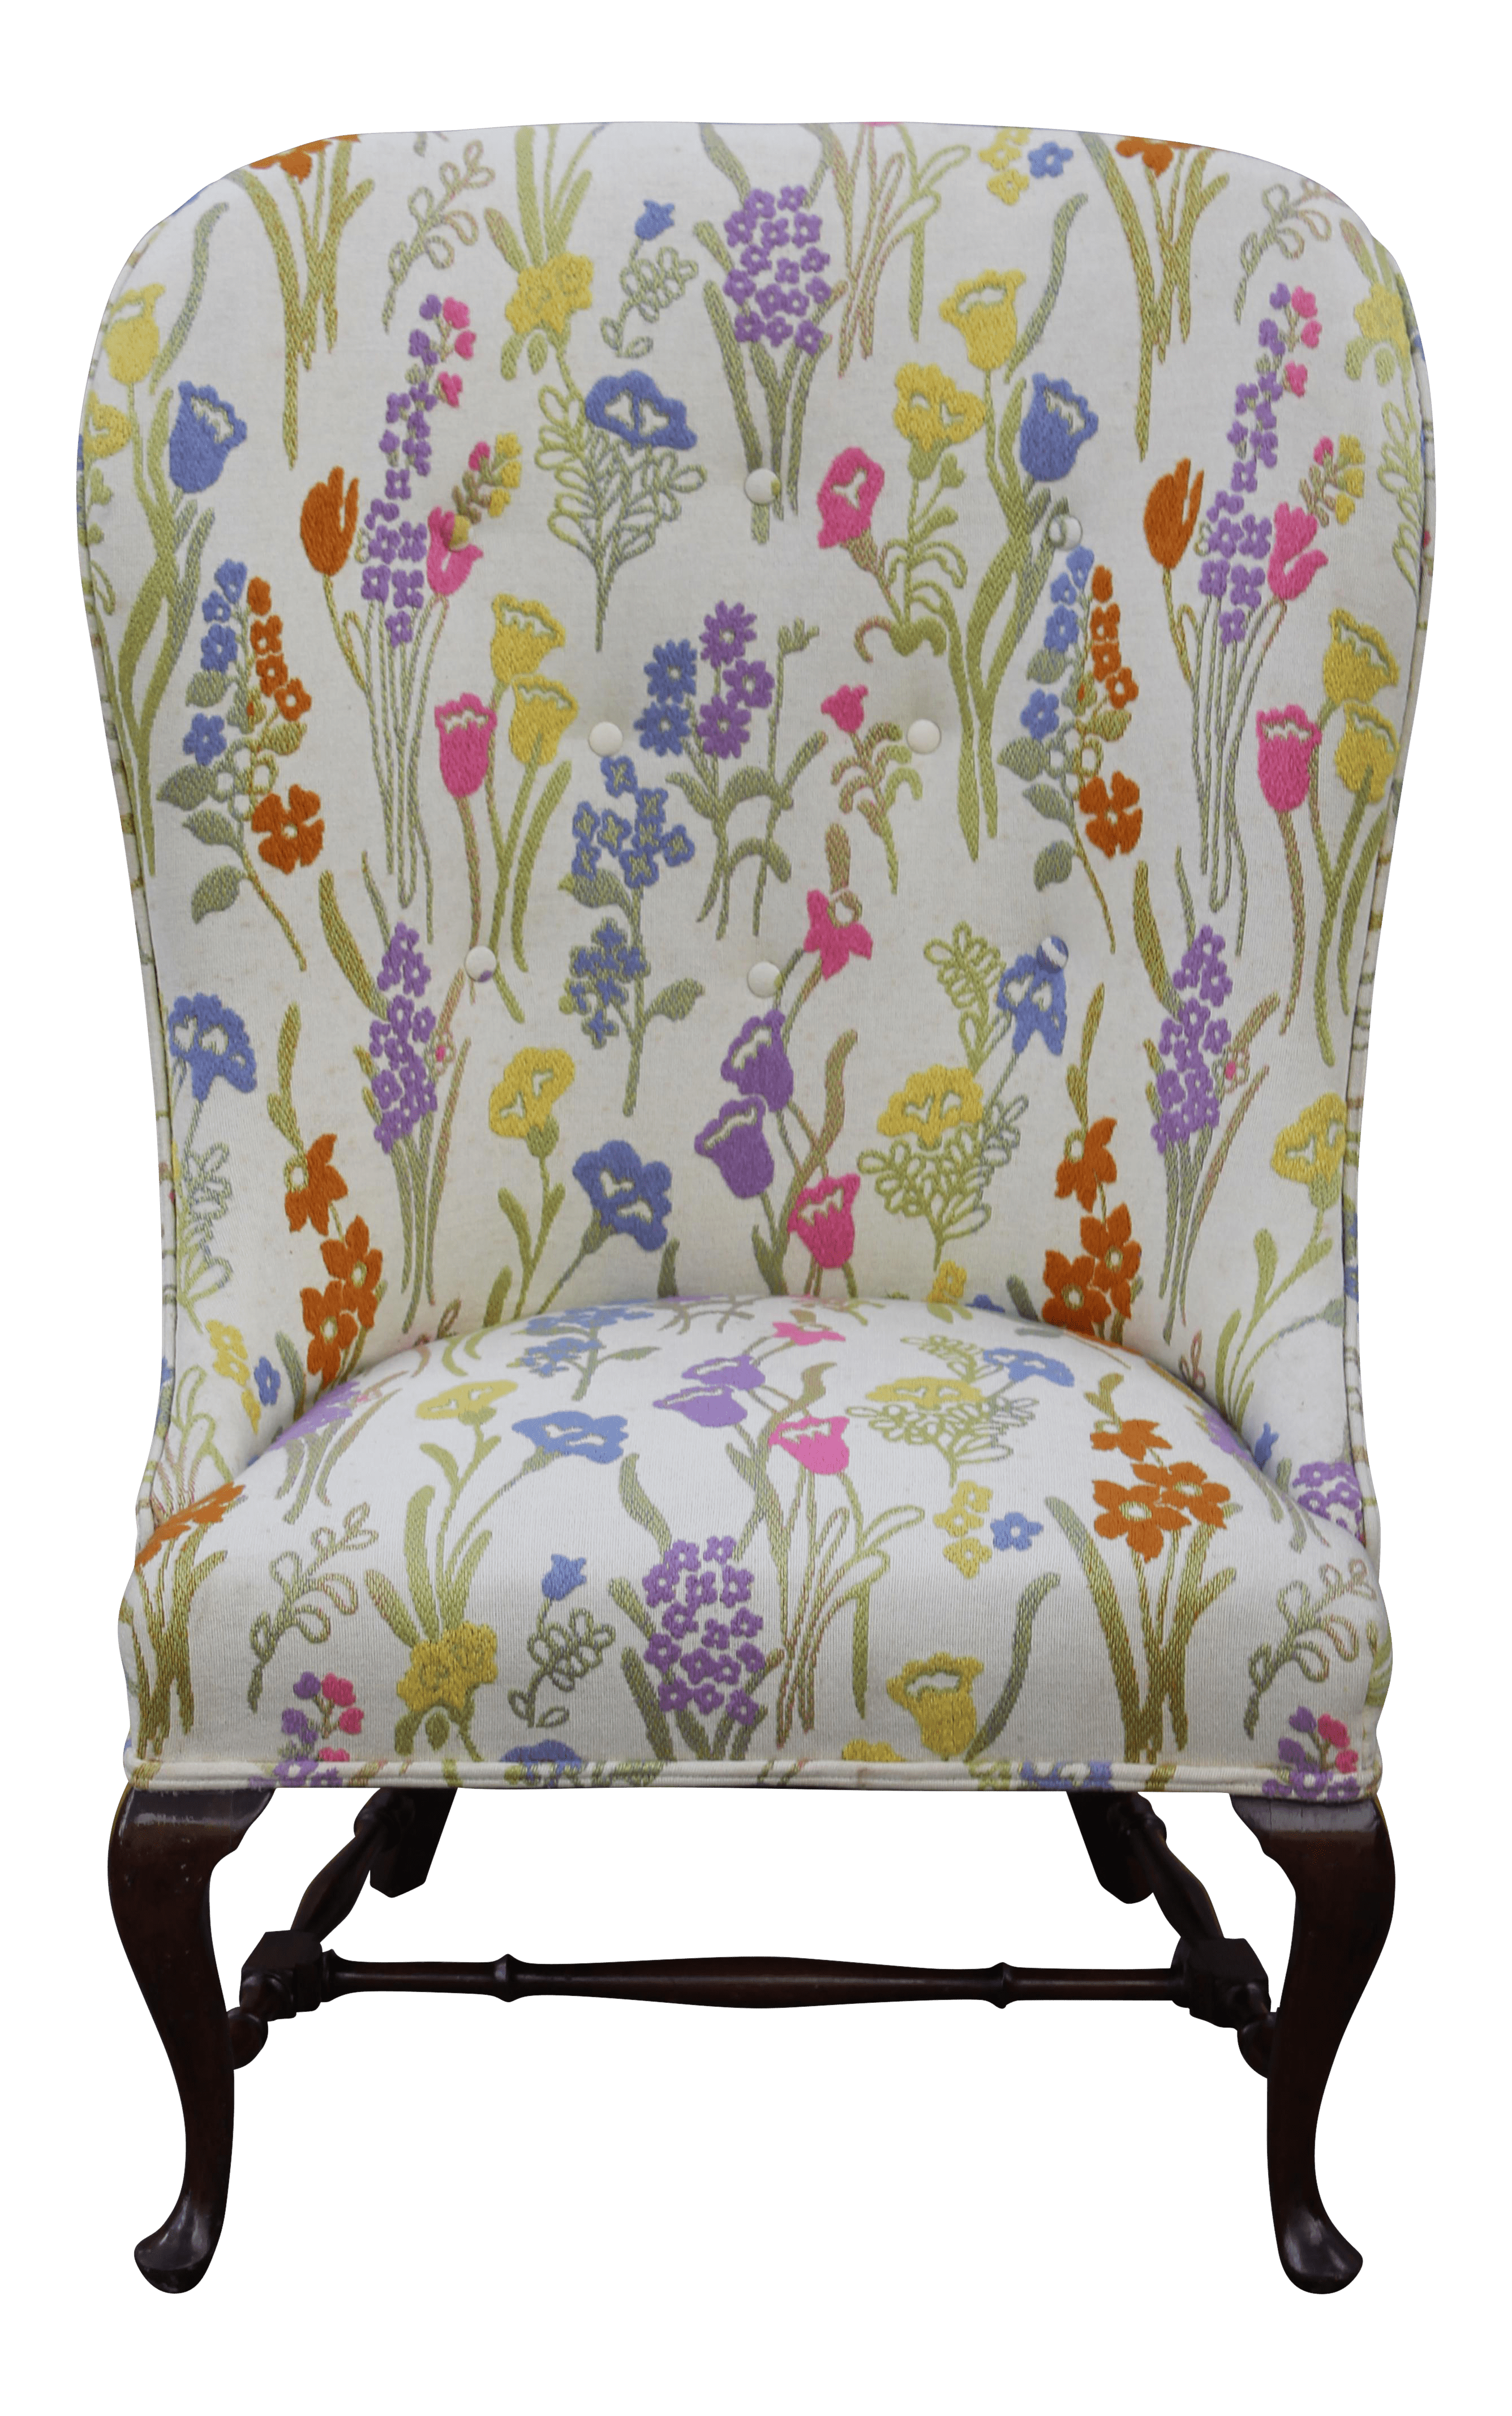 Floral Wingback Chair Vintage Mid Century Floral Wingback Chair Chairish